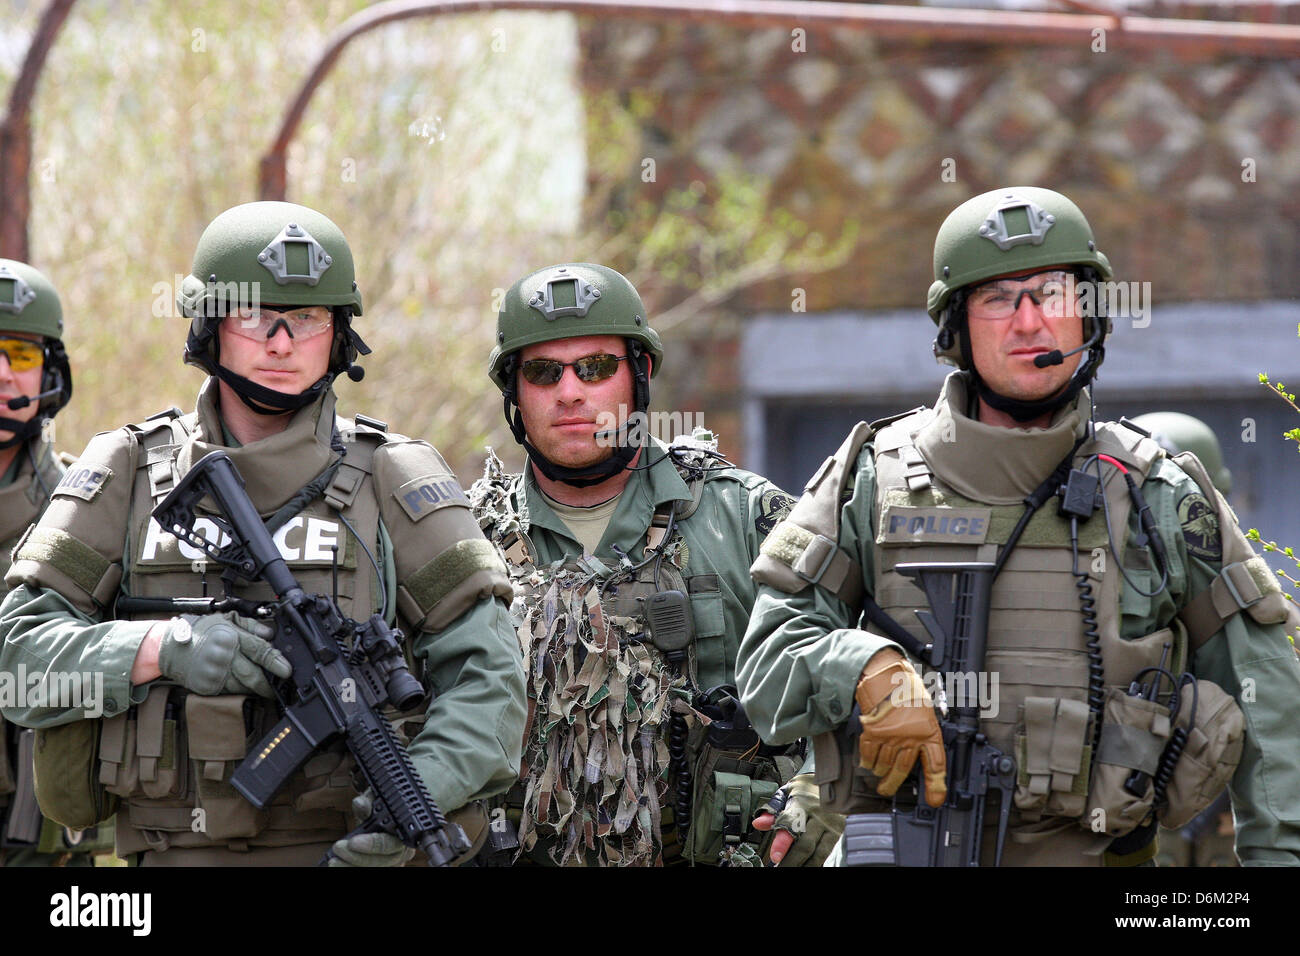 Watertown, Massachusetts, USA. 19th April, 2013. SWAT team members ...